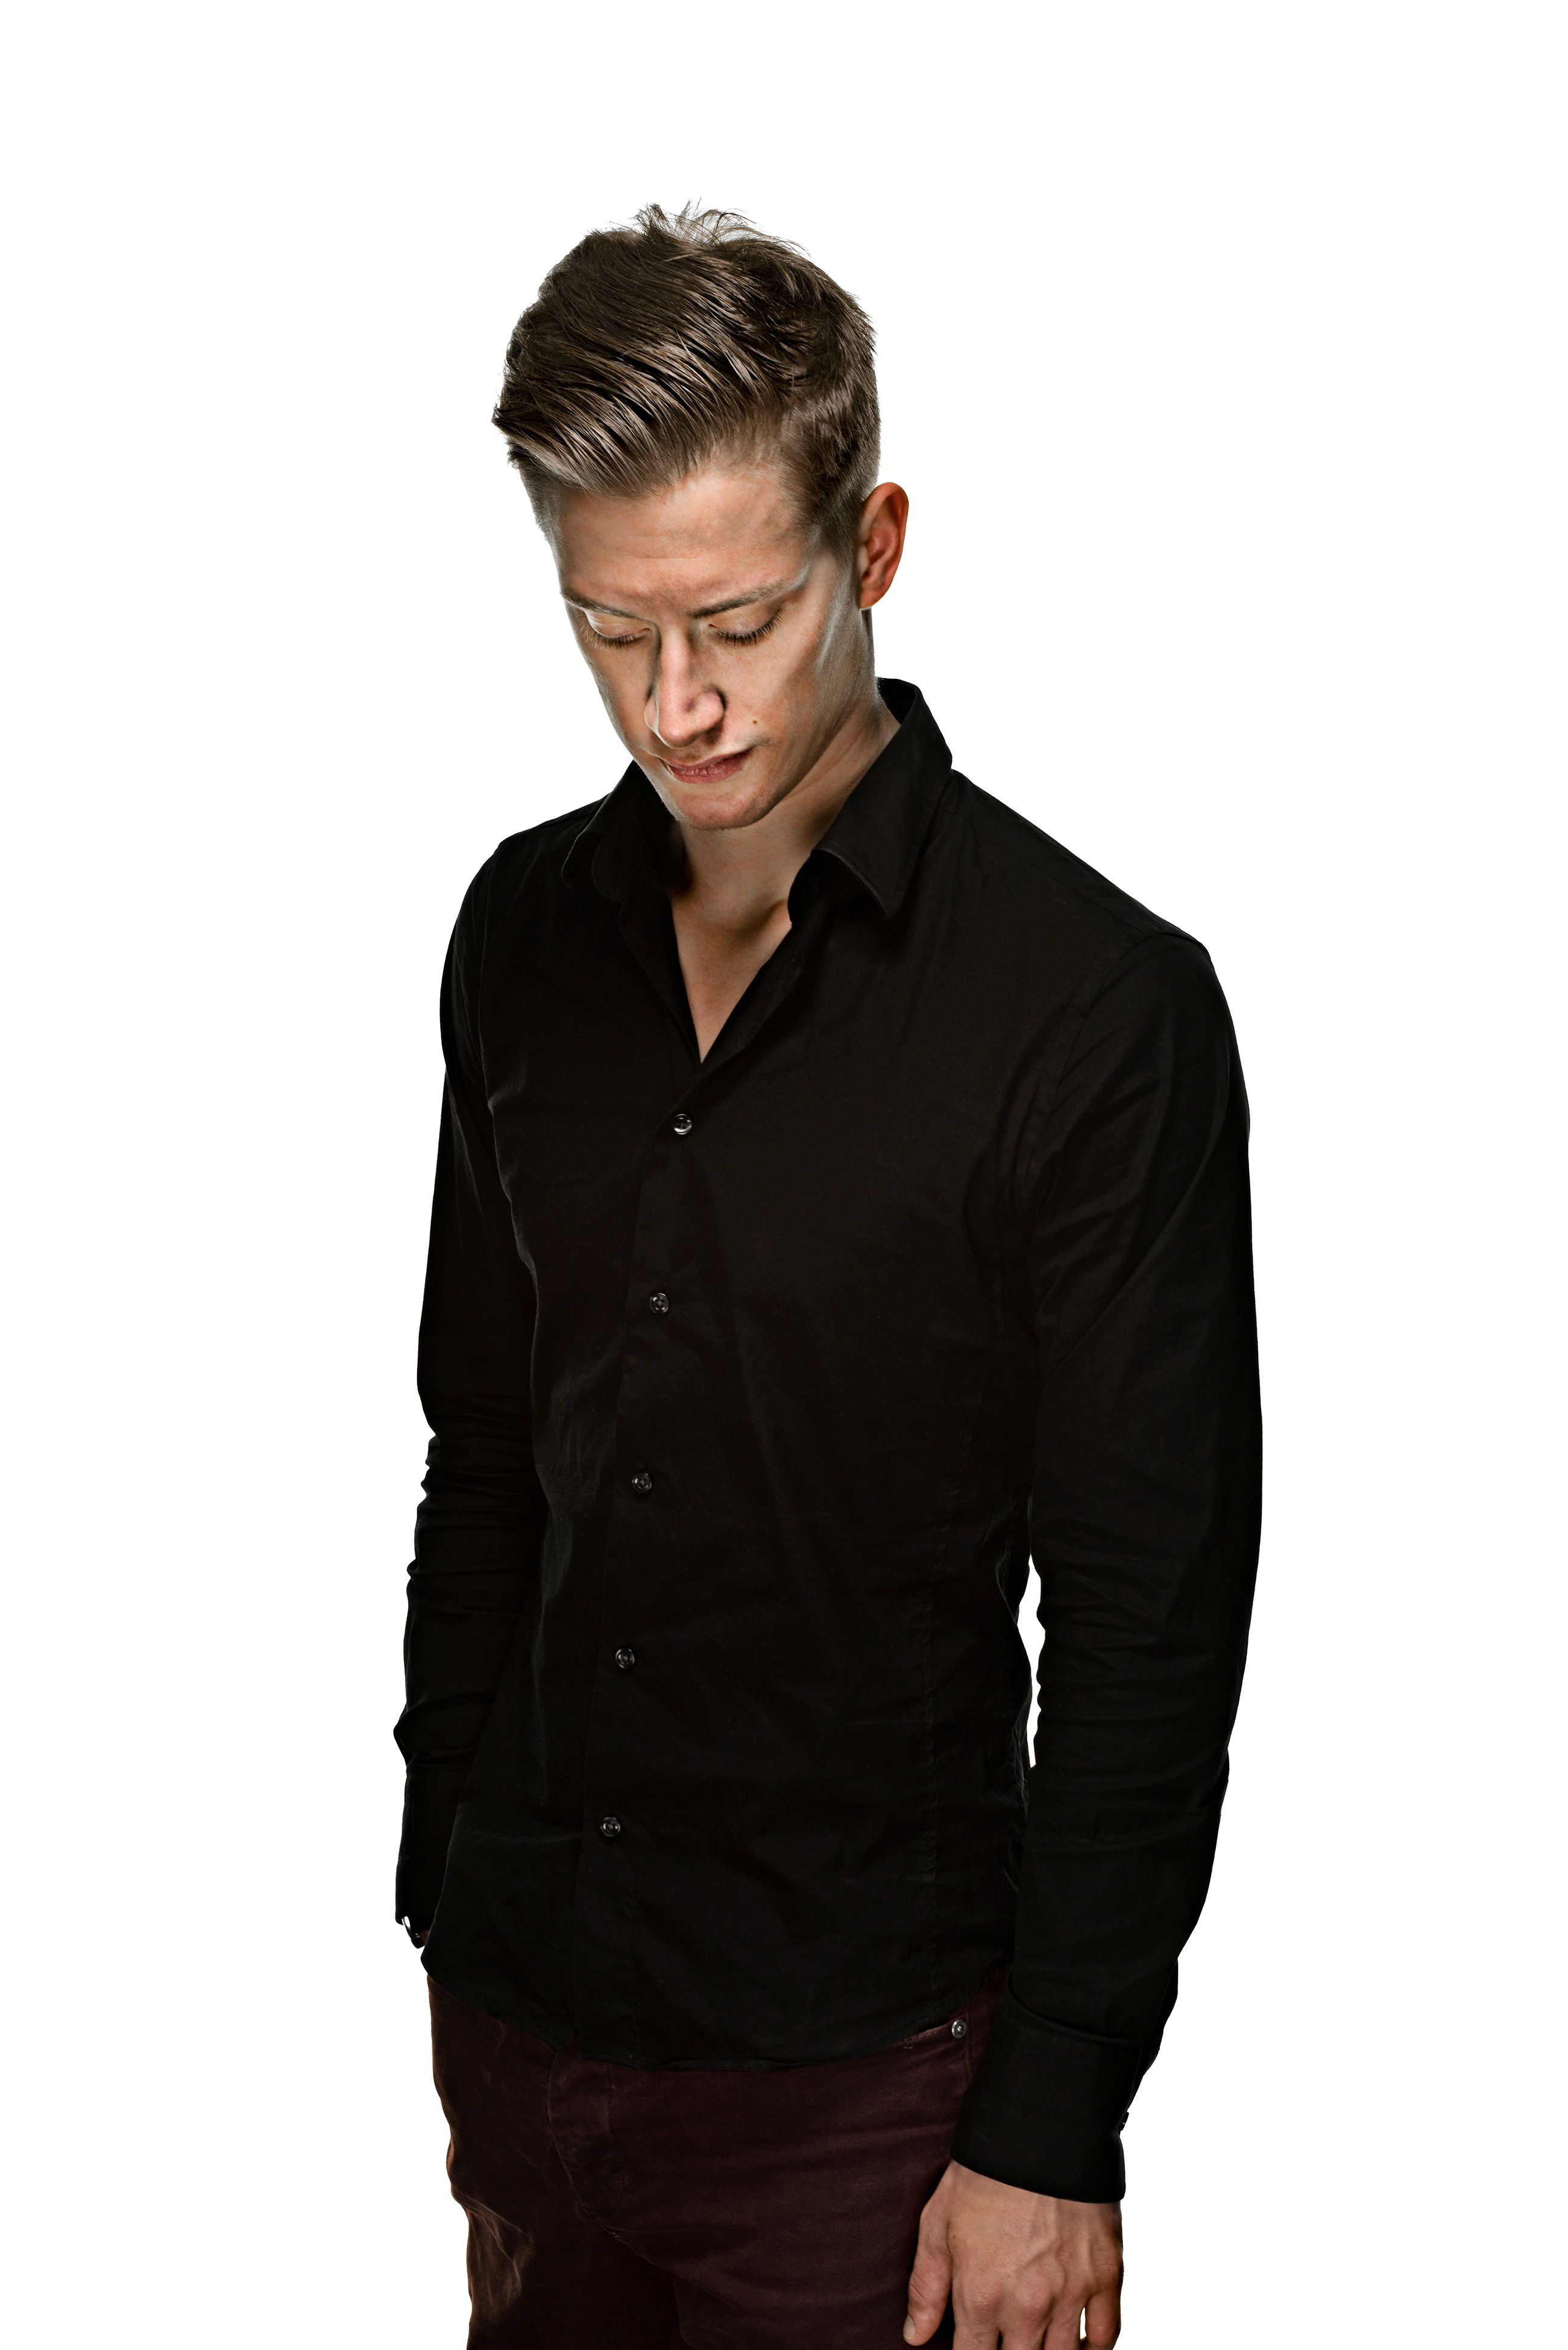 Scottish stand-up comedian Daniel Sloss who is performing his show